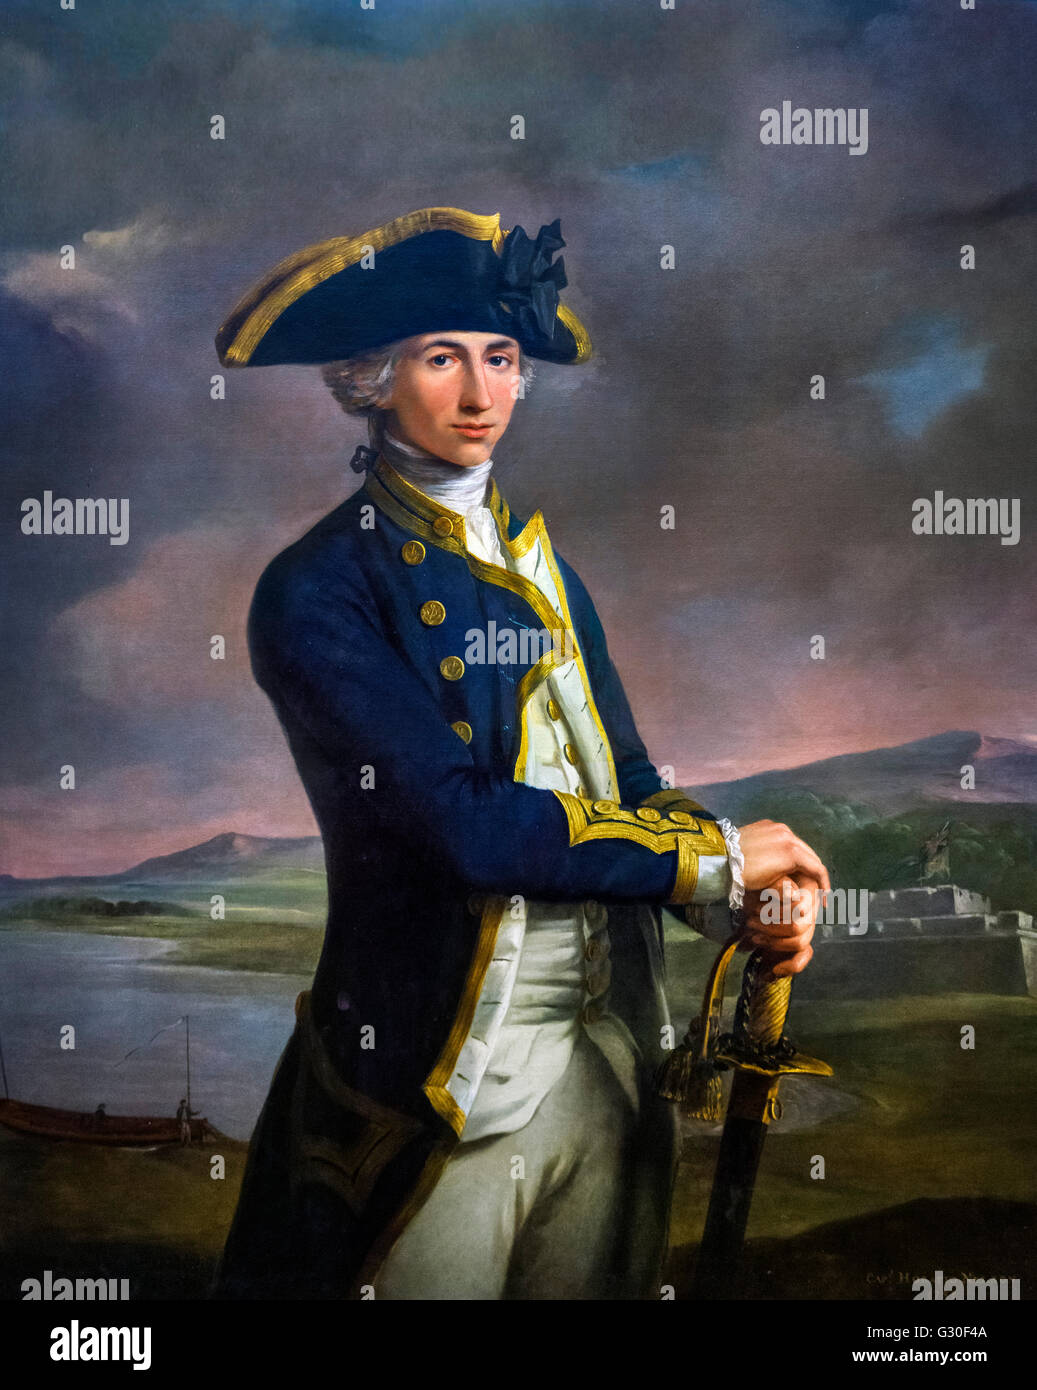 Captain Horatio Nelson by John Francis Rigaud, oil on canvas, 1781. This portrait shows the future Lord Nelson in - Stock Image